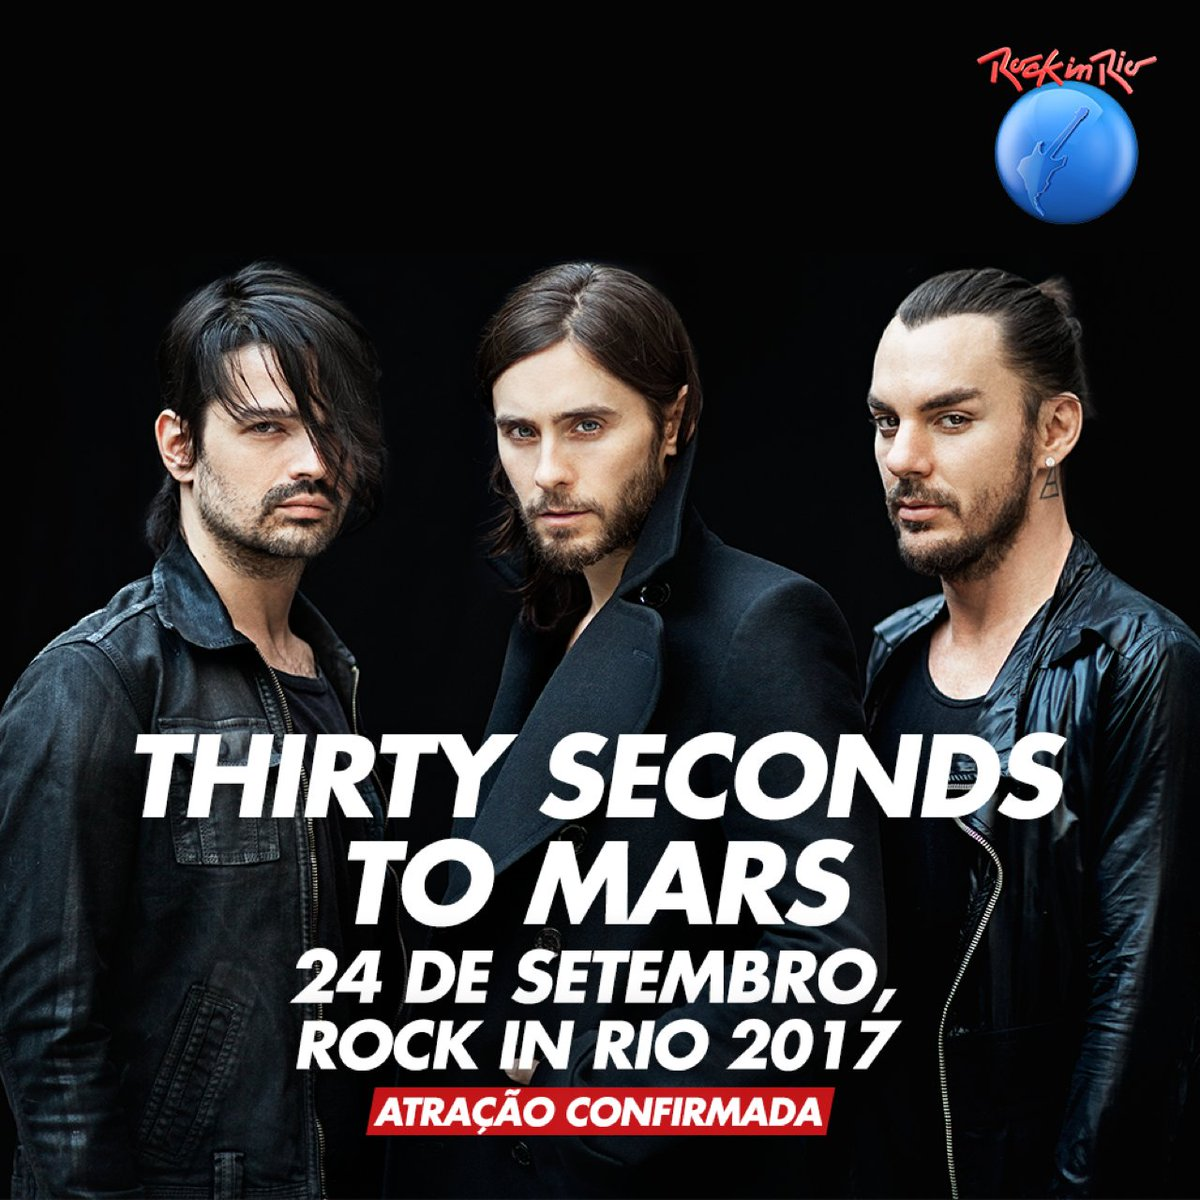 .@30SECONDSTOMARS ESTÁ CHEGANDO / 24 DE SETEMBRO / https://t.co/b9PJmPuzsE. #RockInRio2017 #MarsIsComing https://t.co/bGsj4LjpWx